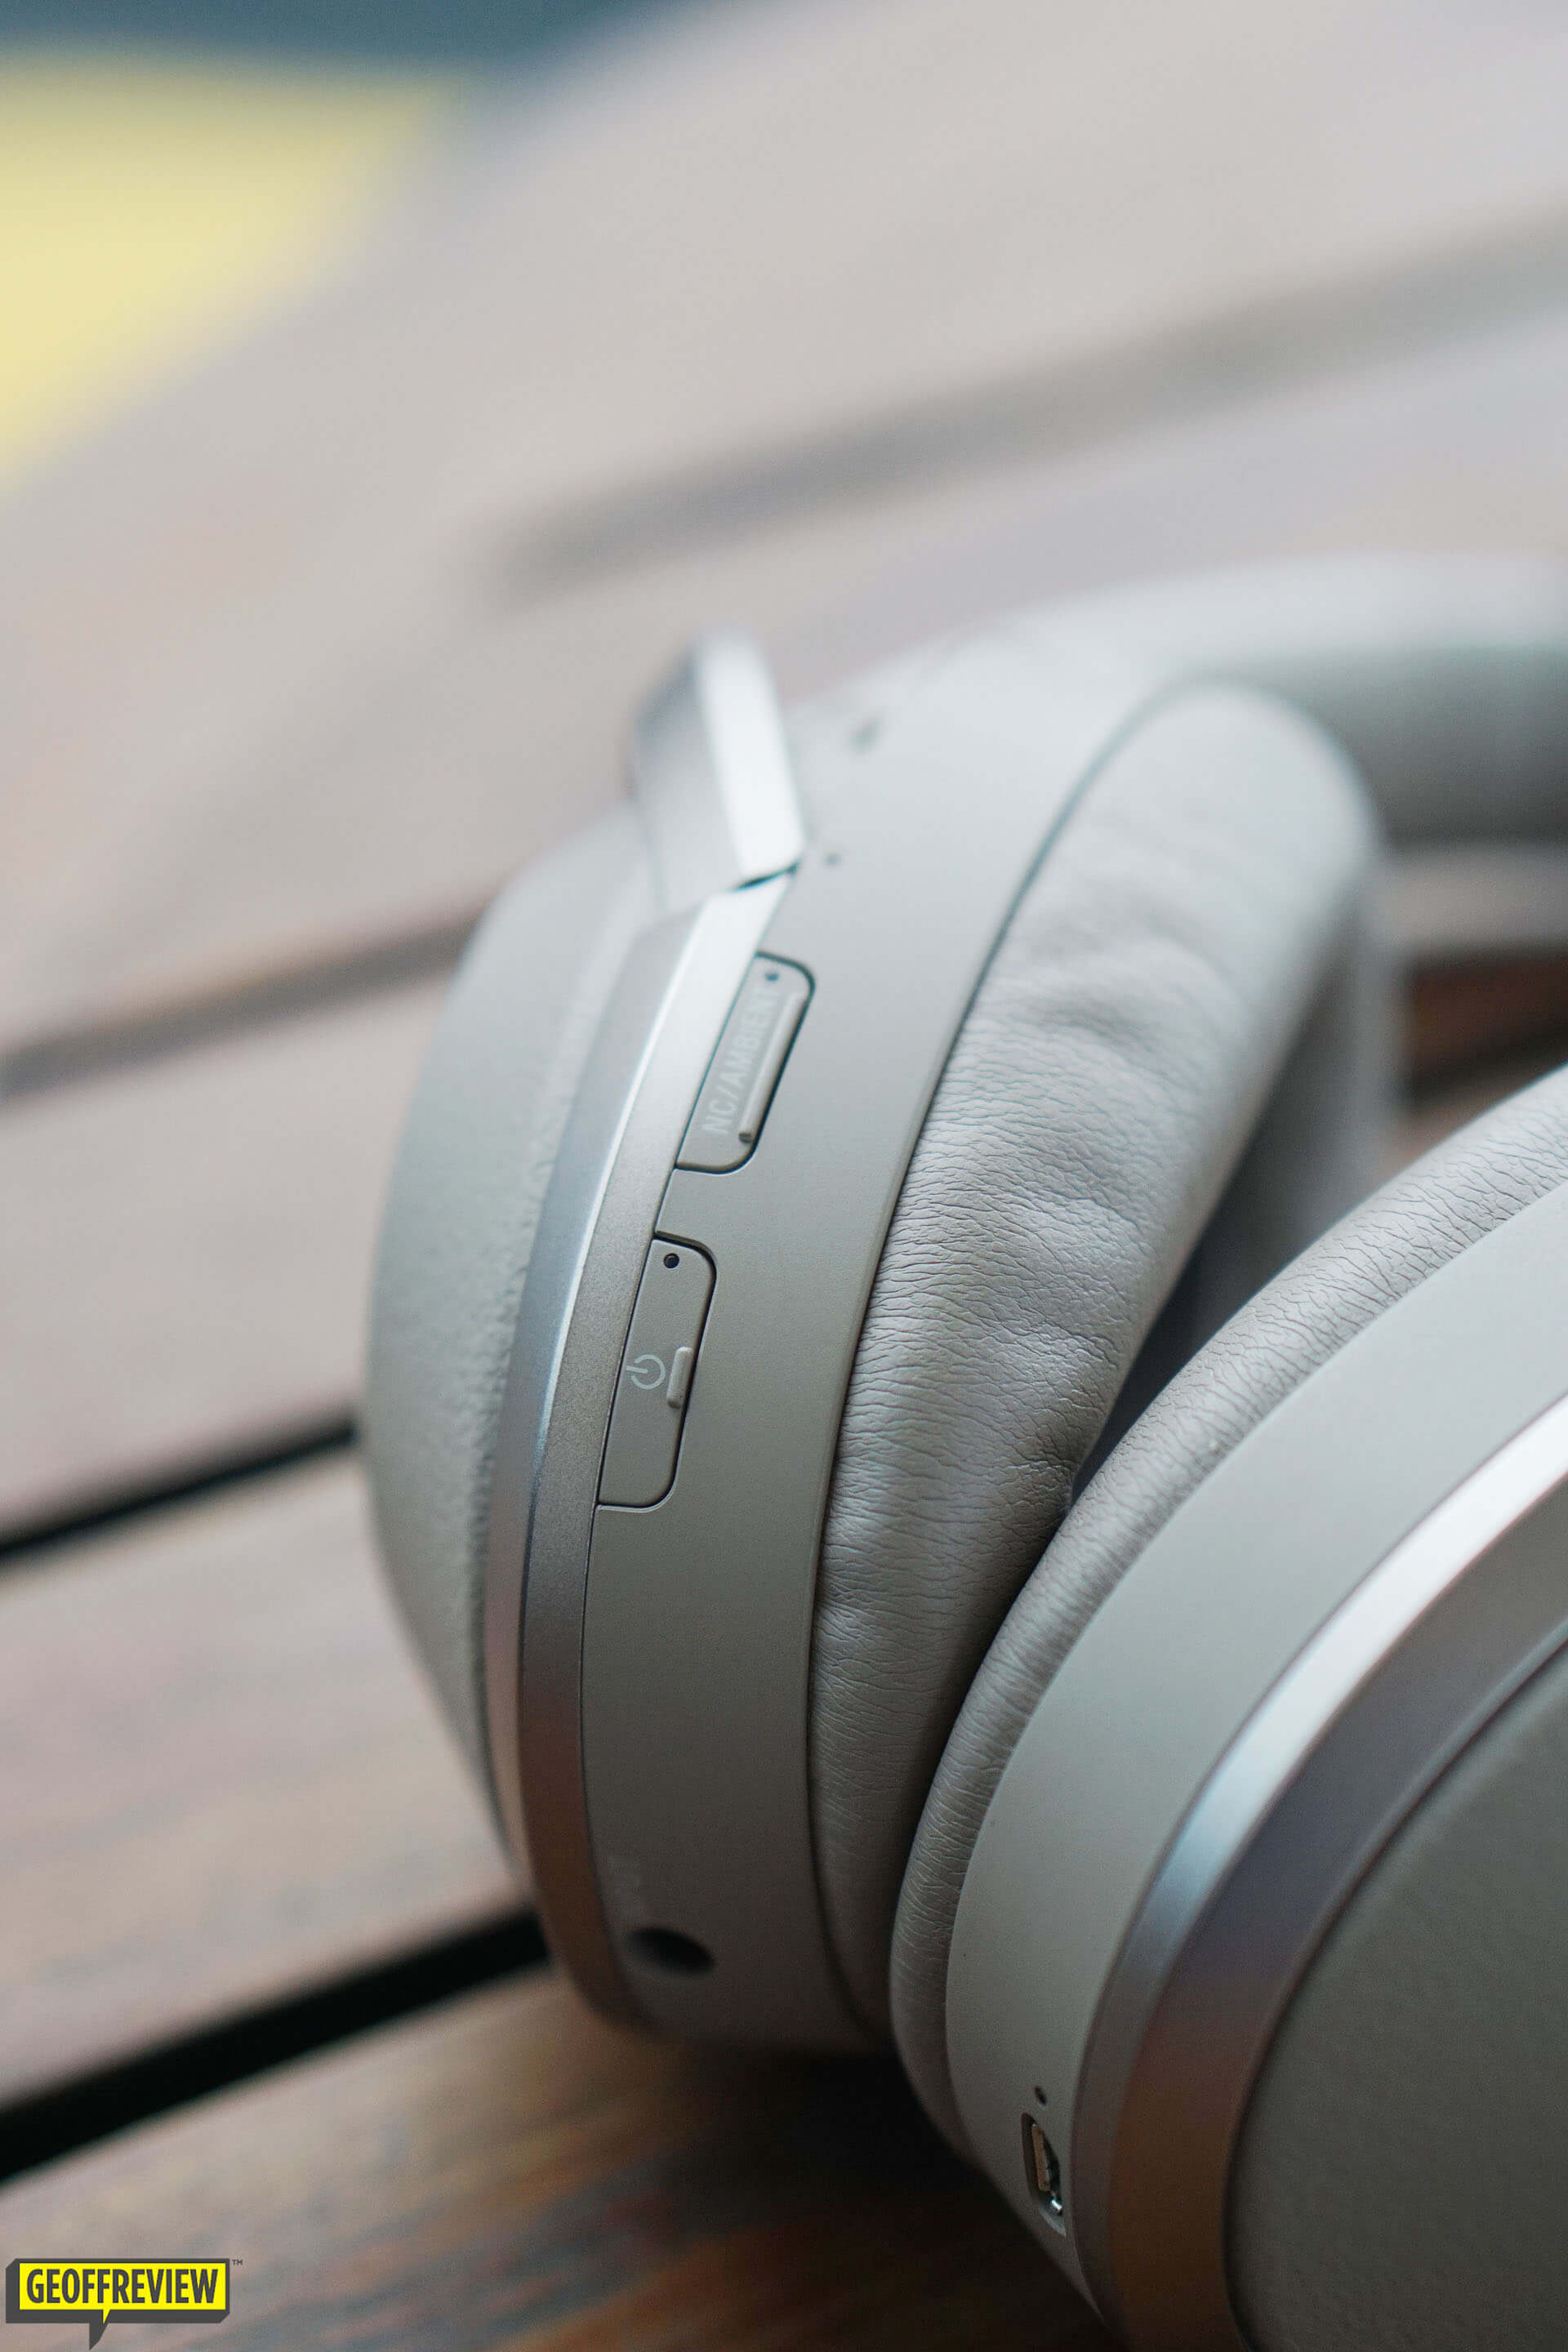 Sony WH-1000XM2 review